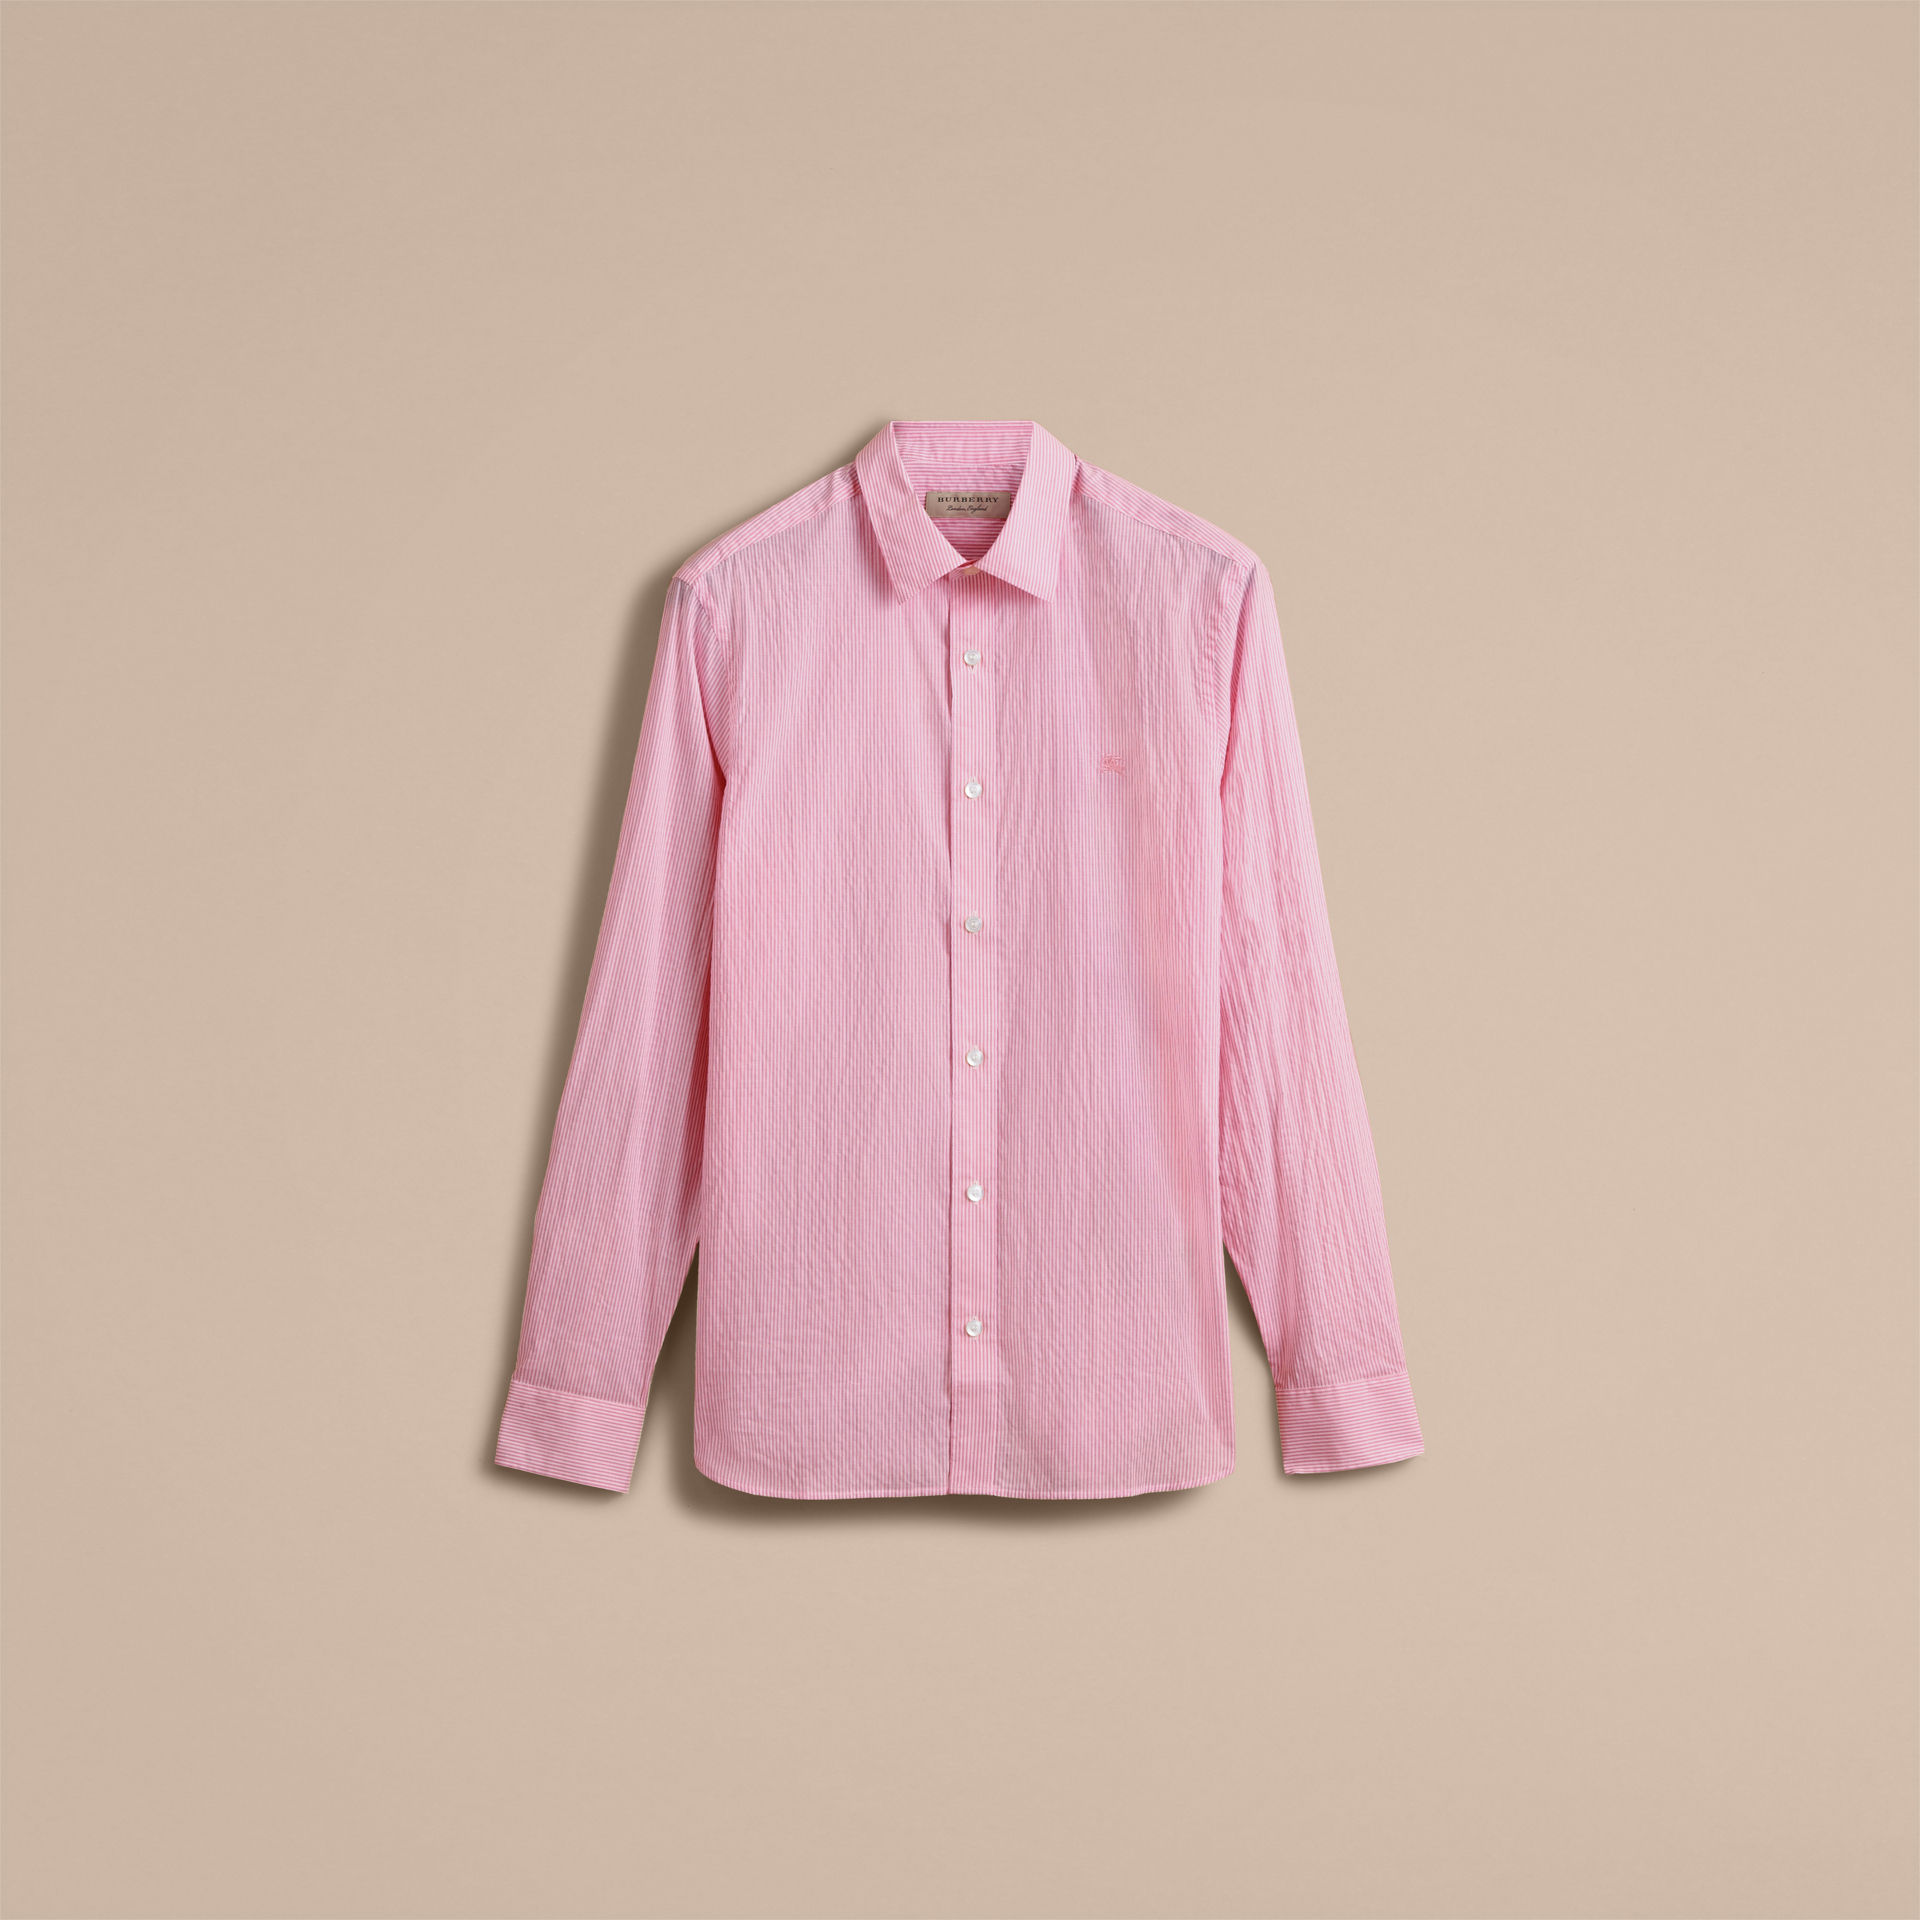 Burberry Pale Pink Striped Cotton Blend Shirt